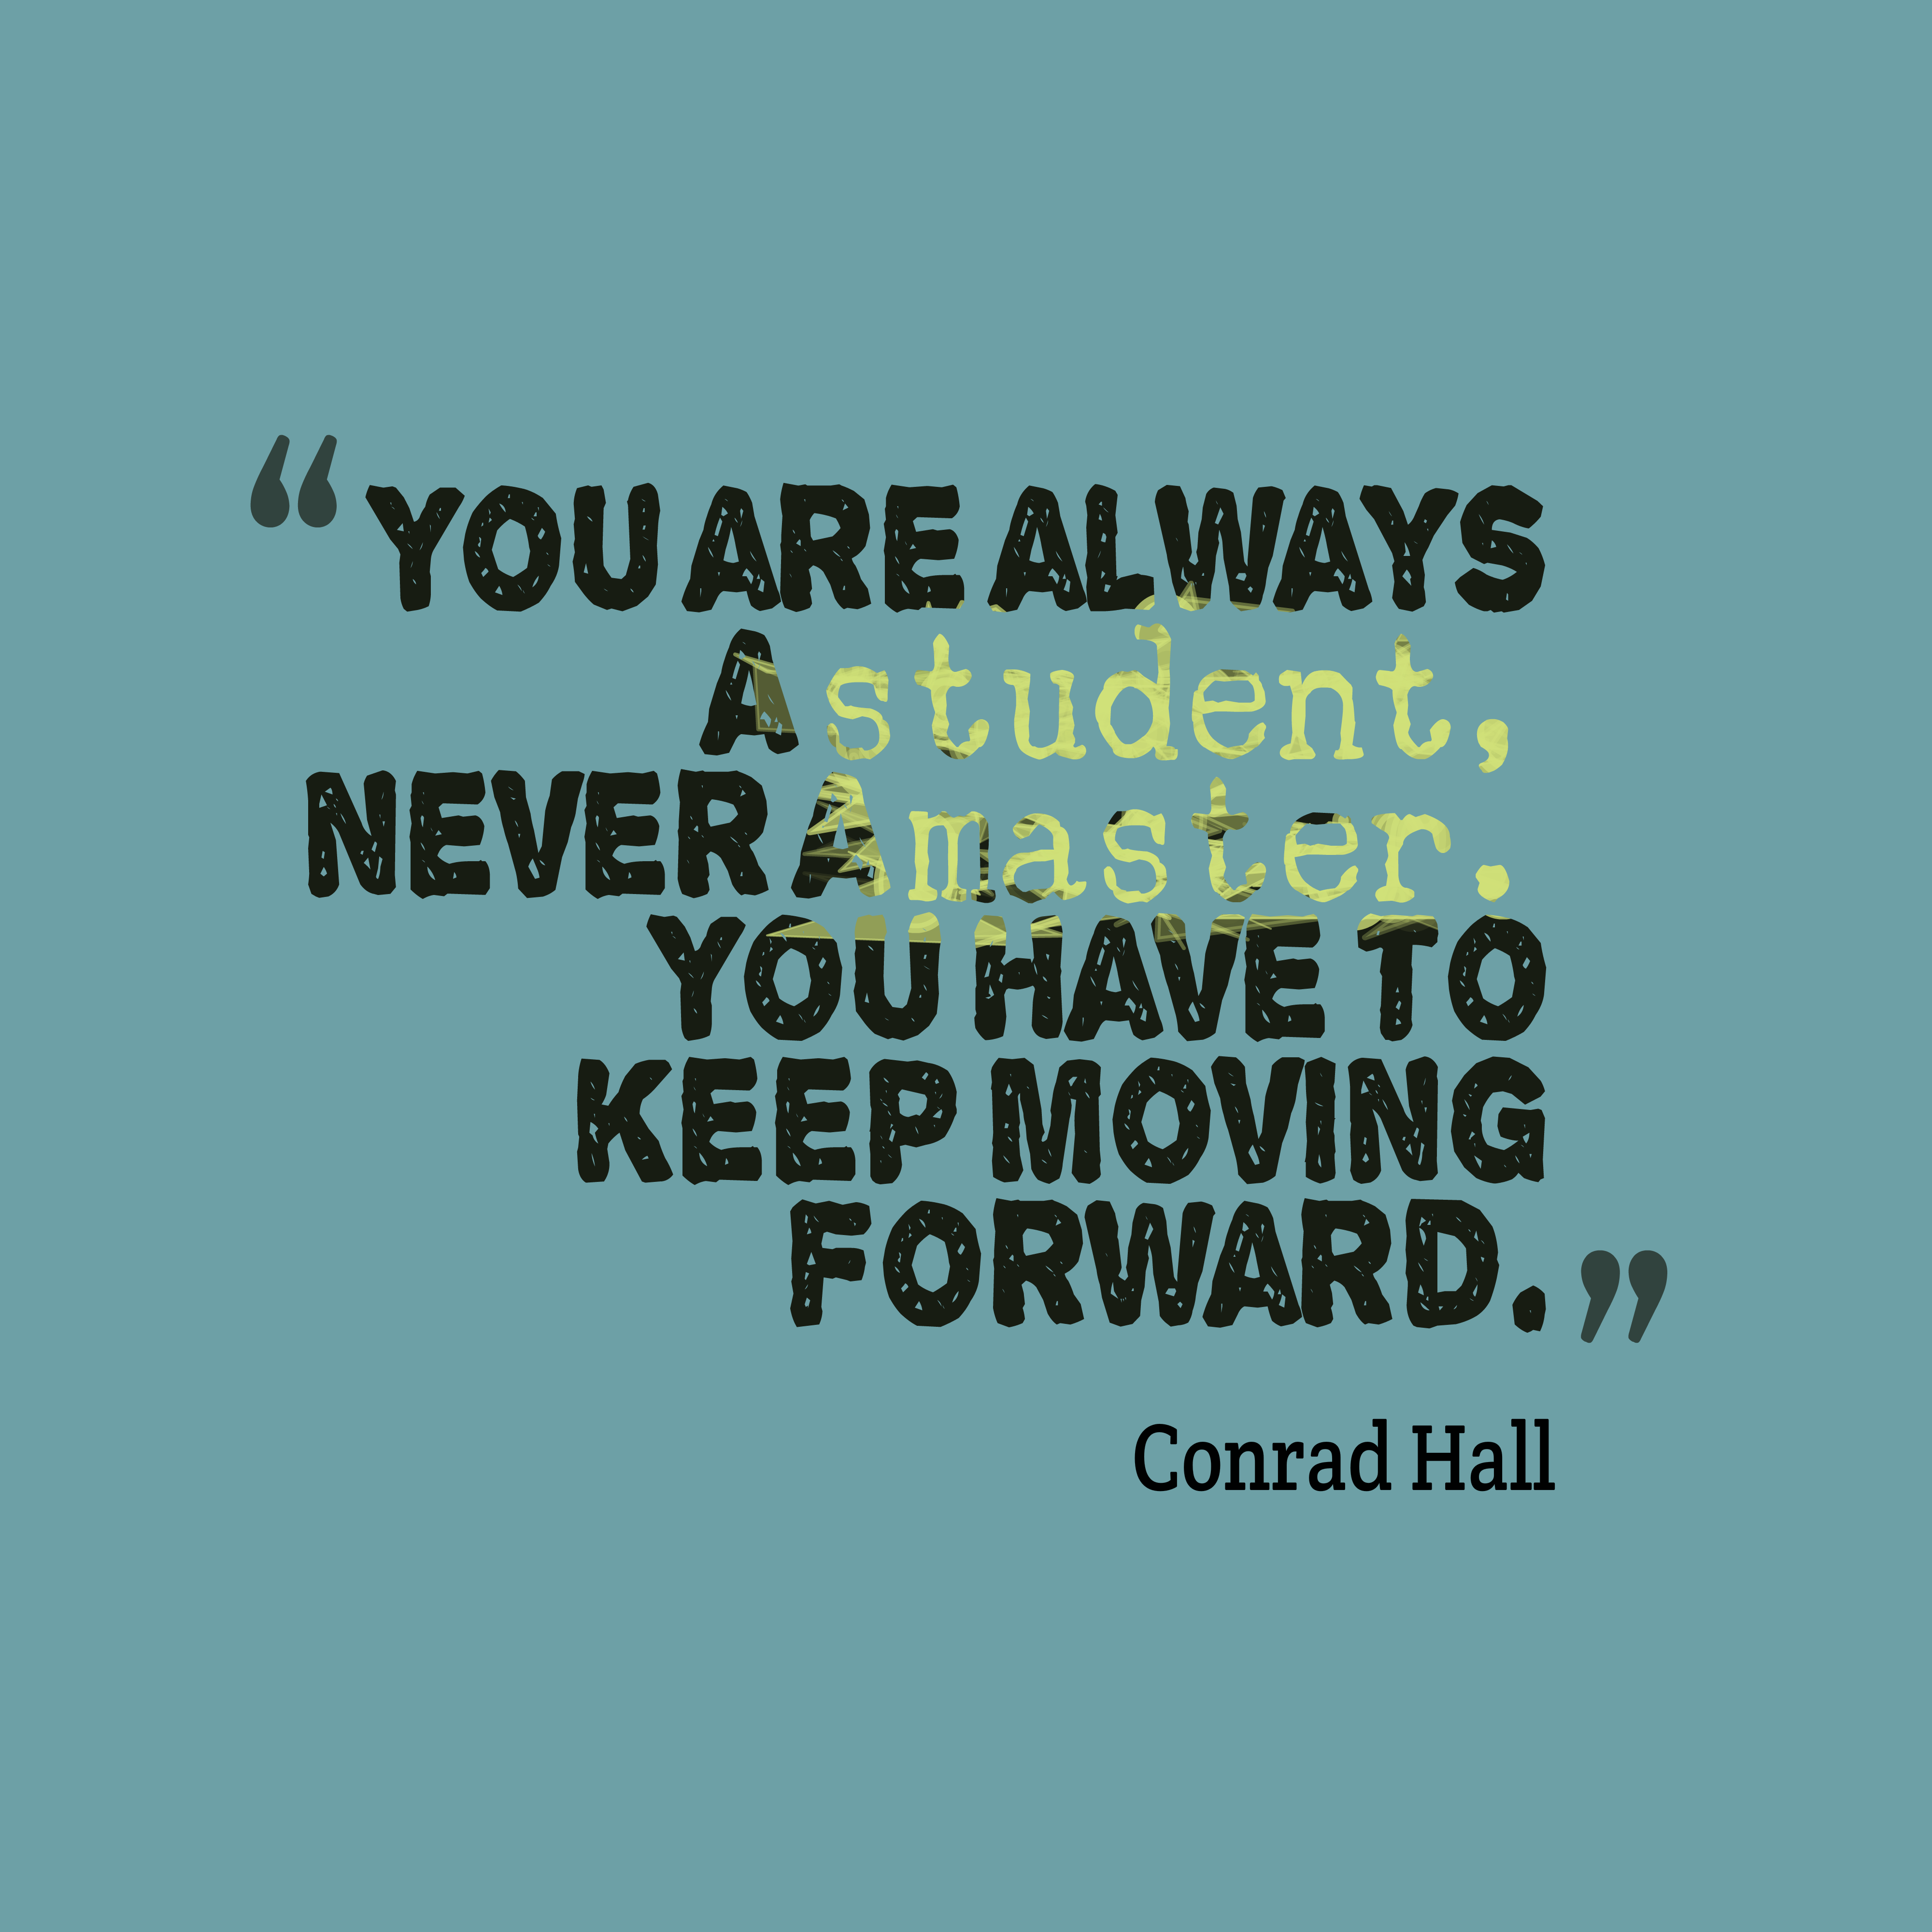 Moving Quote Picture Conrad Hall Quote About Education Quotescover